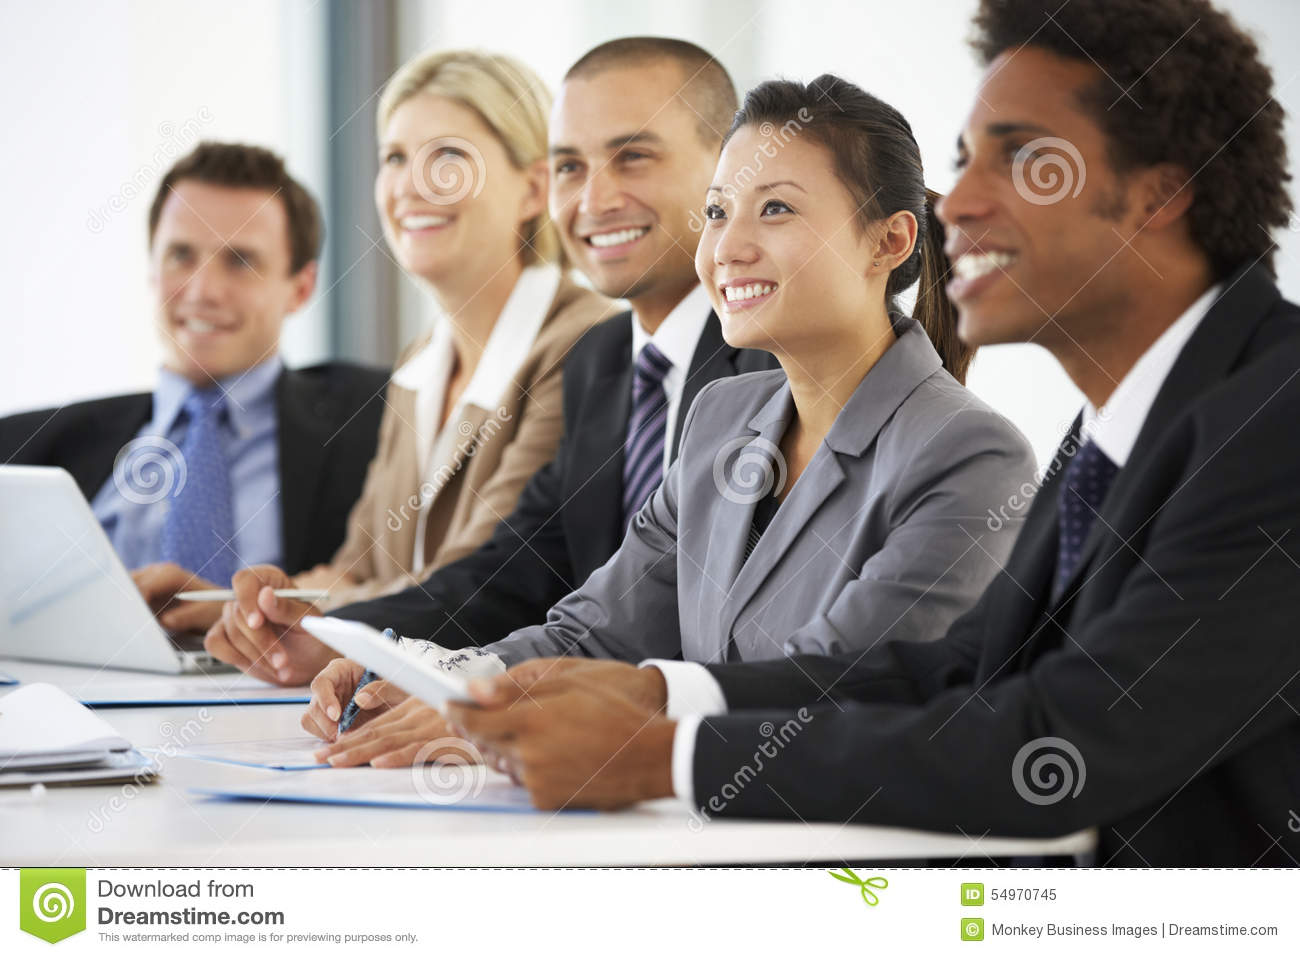 office meeting pictures. Group Of Business People Listening To Colleague Addressing Office Meeting Pictures S